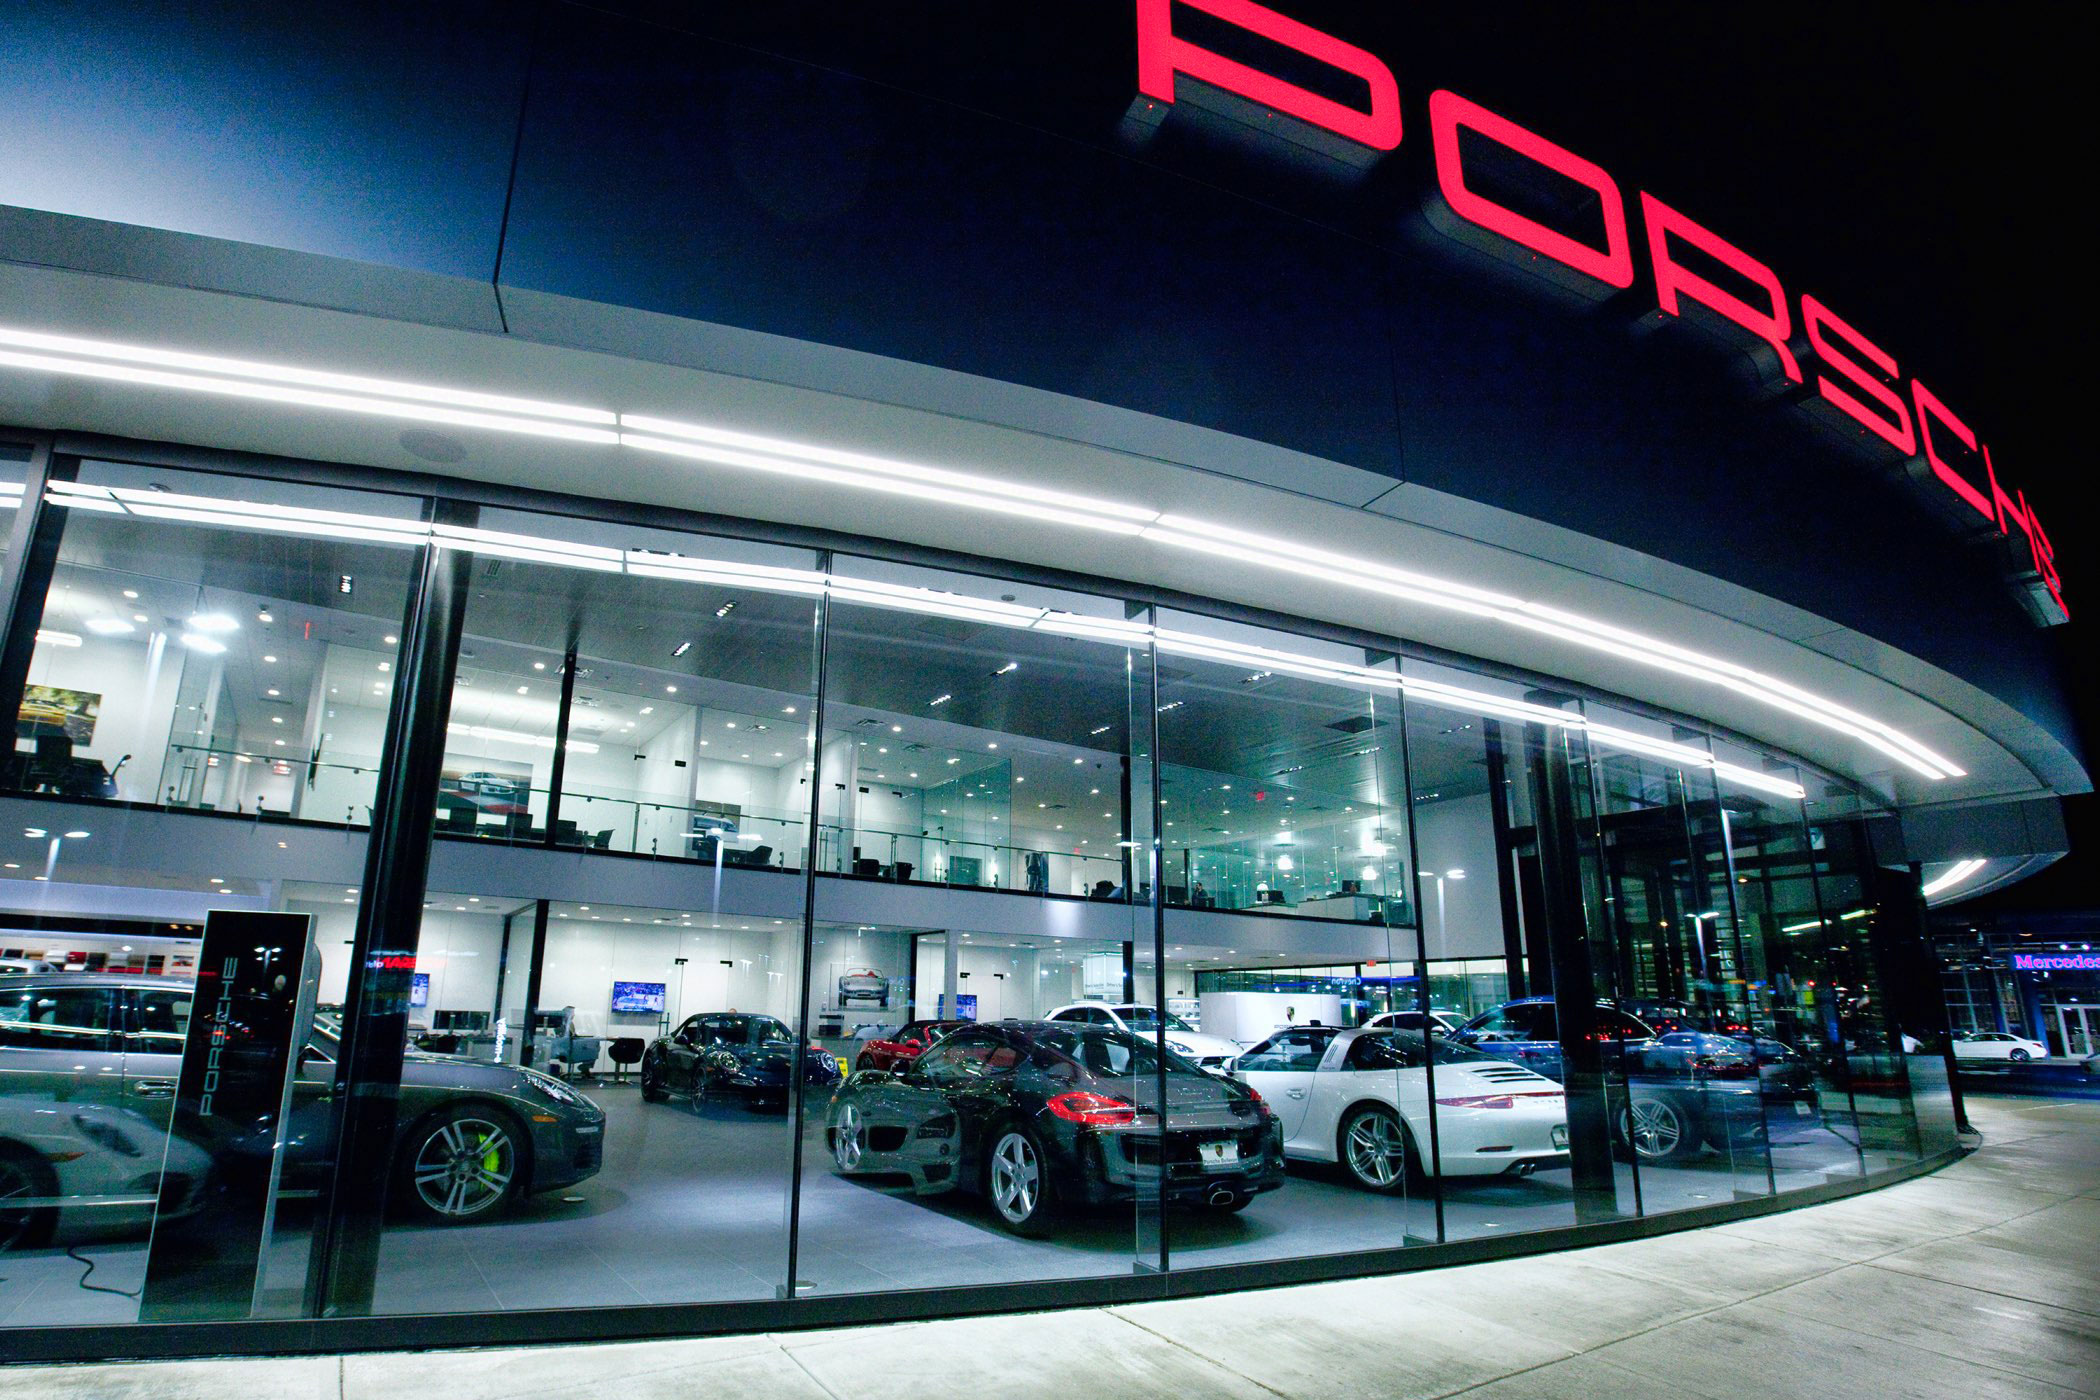 Studio Lux Lighting Porsche Barrier